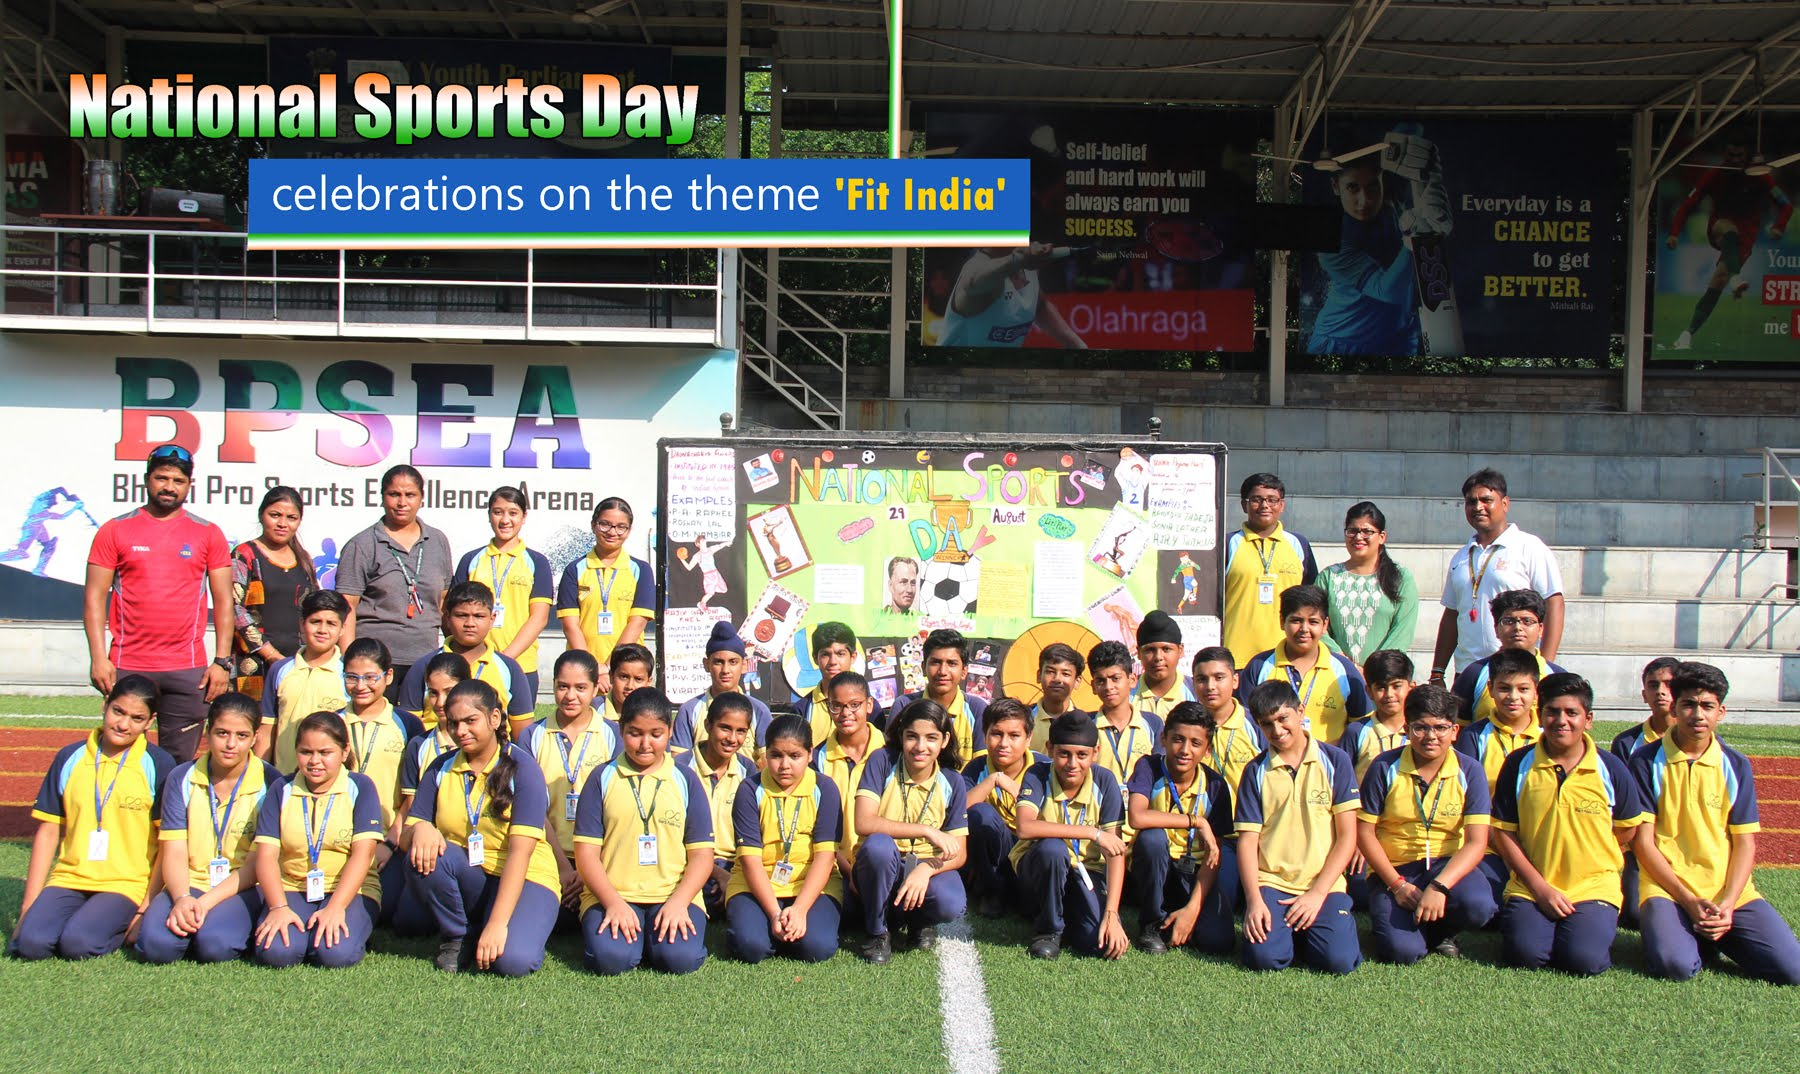 National Sports Day celebrations on the theme 'Fit India'